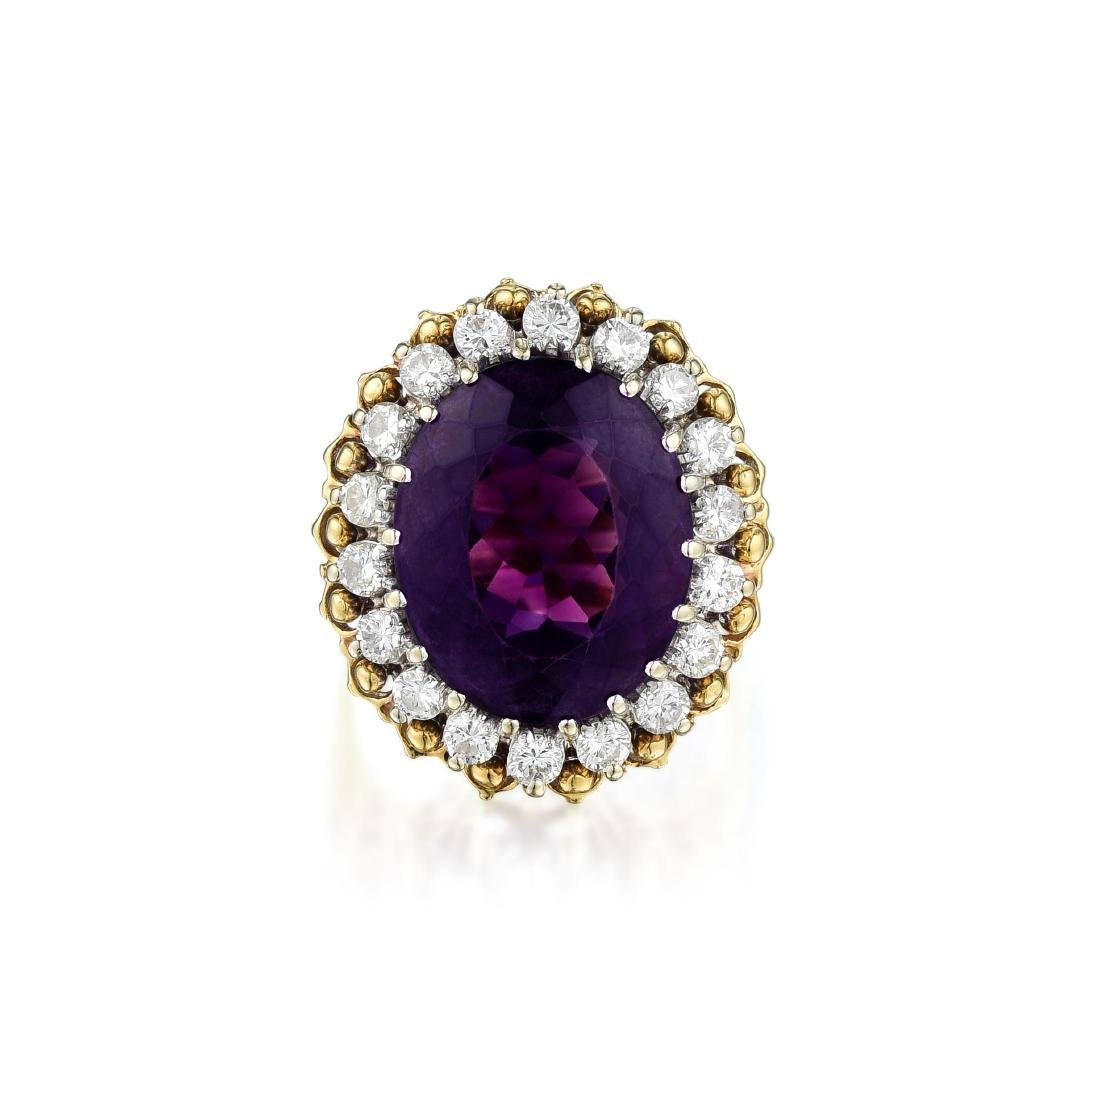 An 18K Gold Amethyst and Diamond Ring